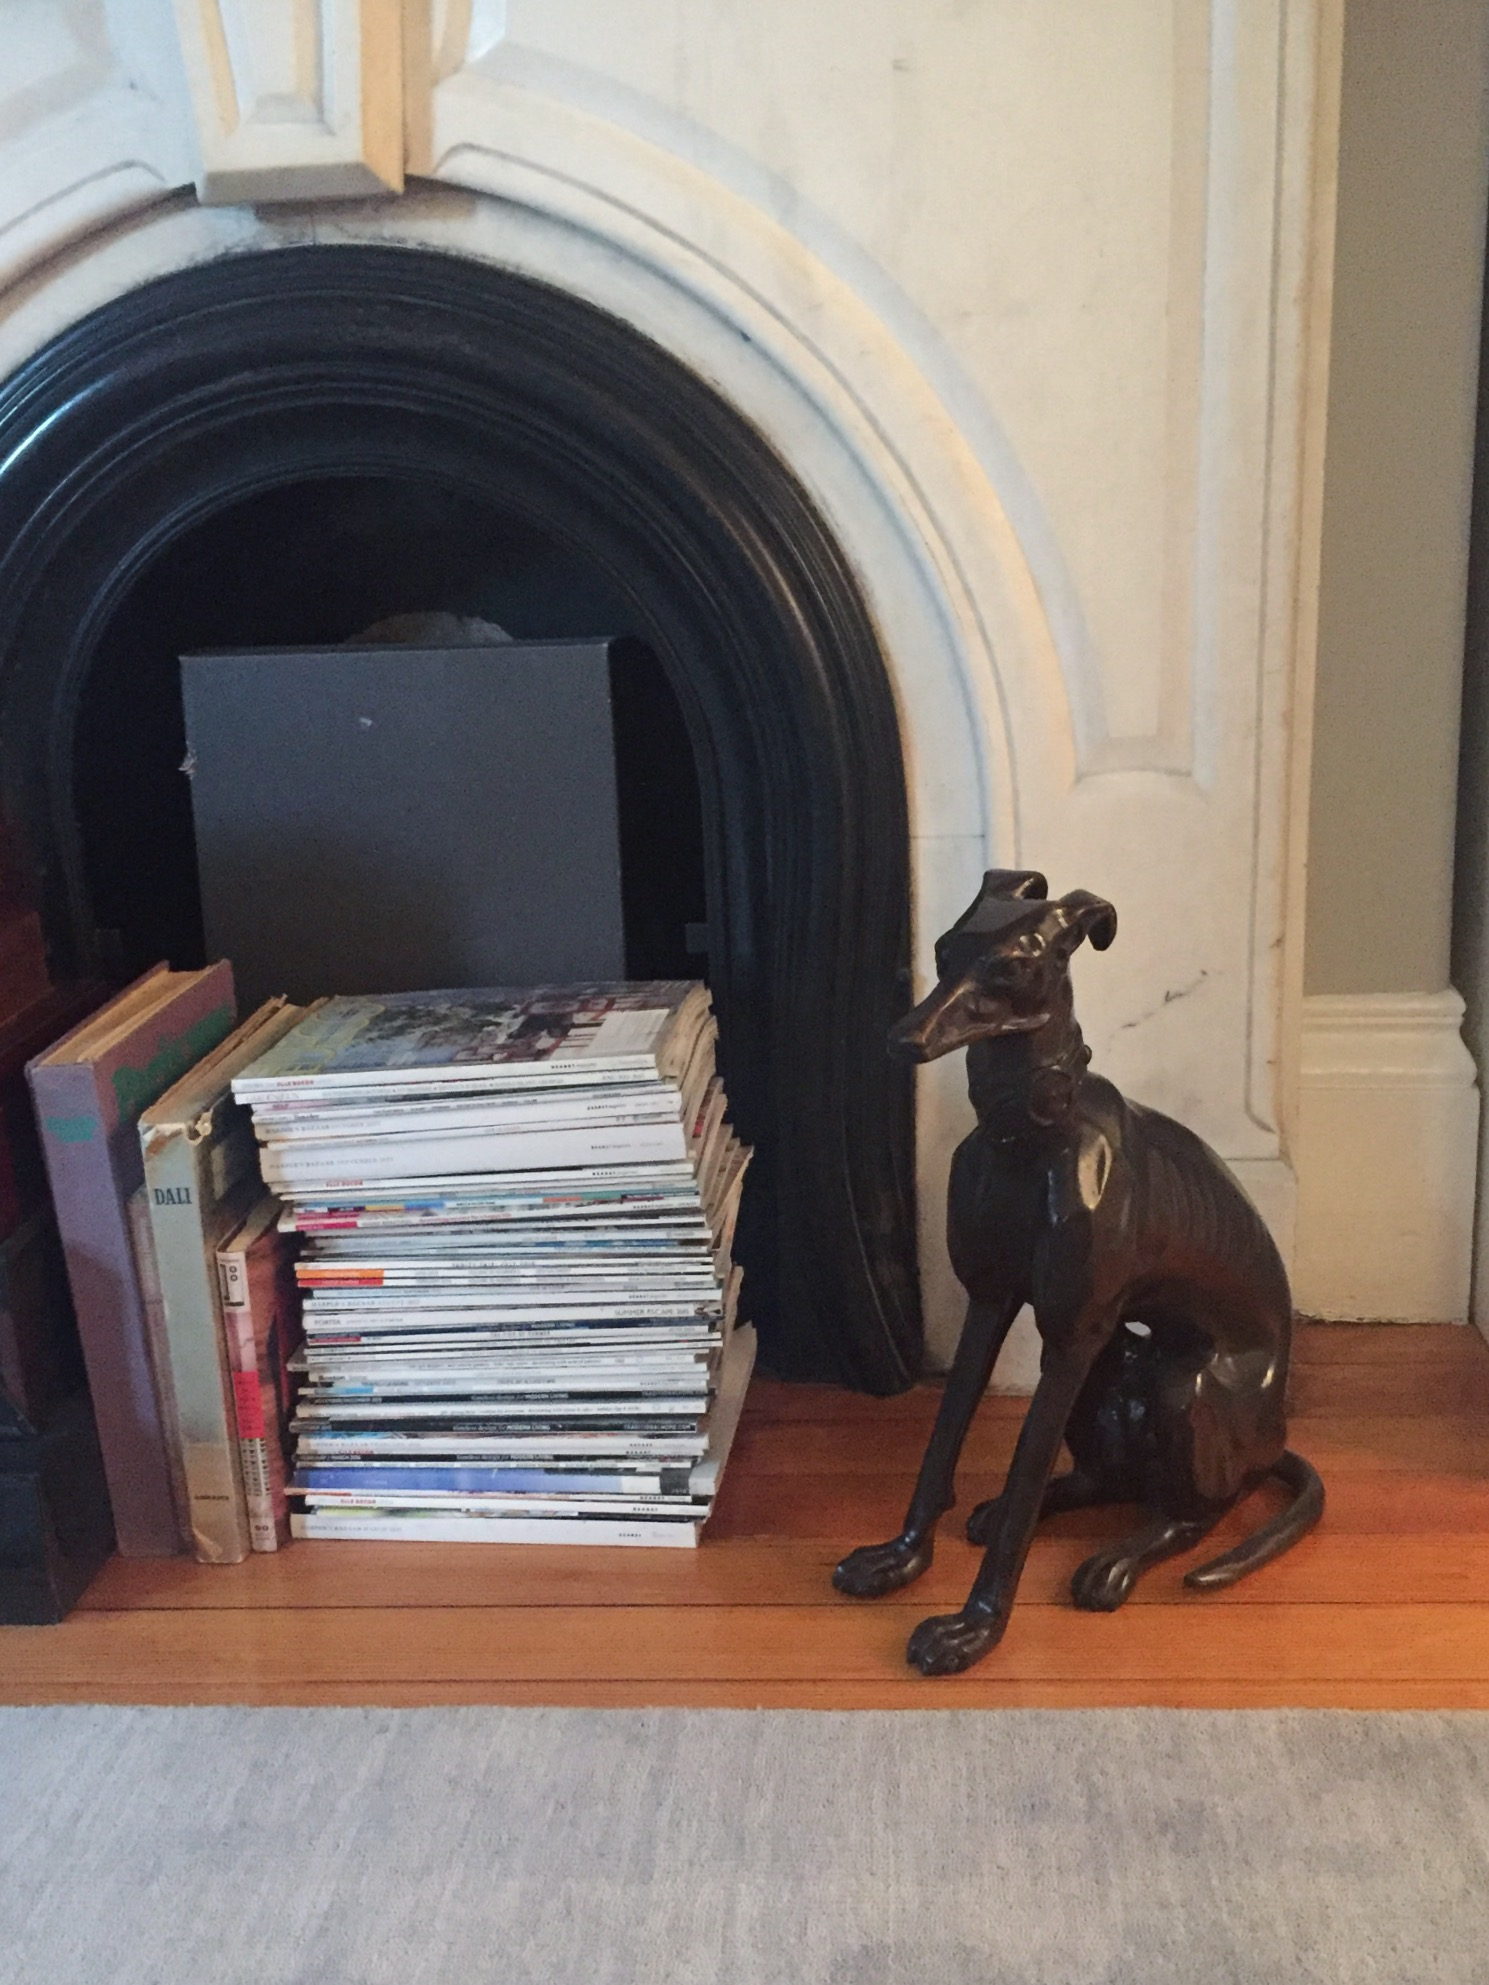 Or, in the case of the bedroom mantel, they're unread-magazine storage.